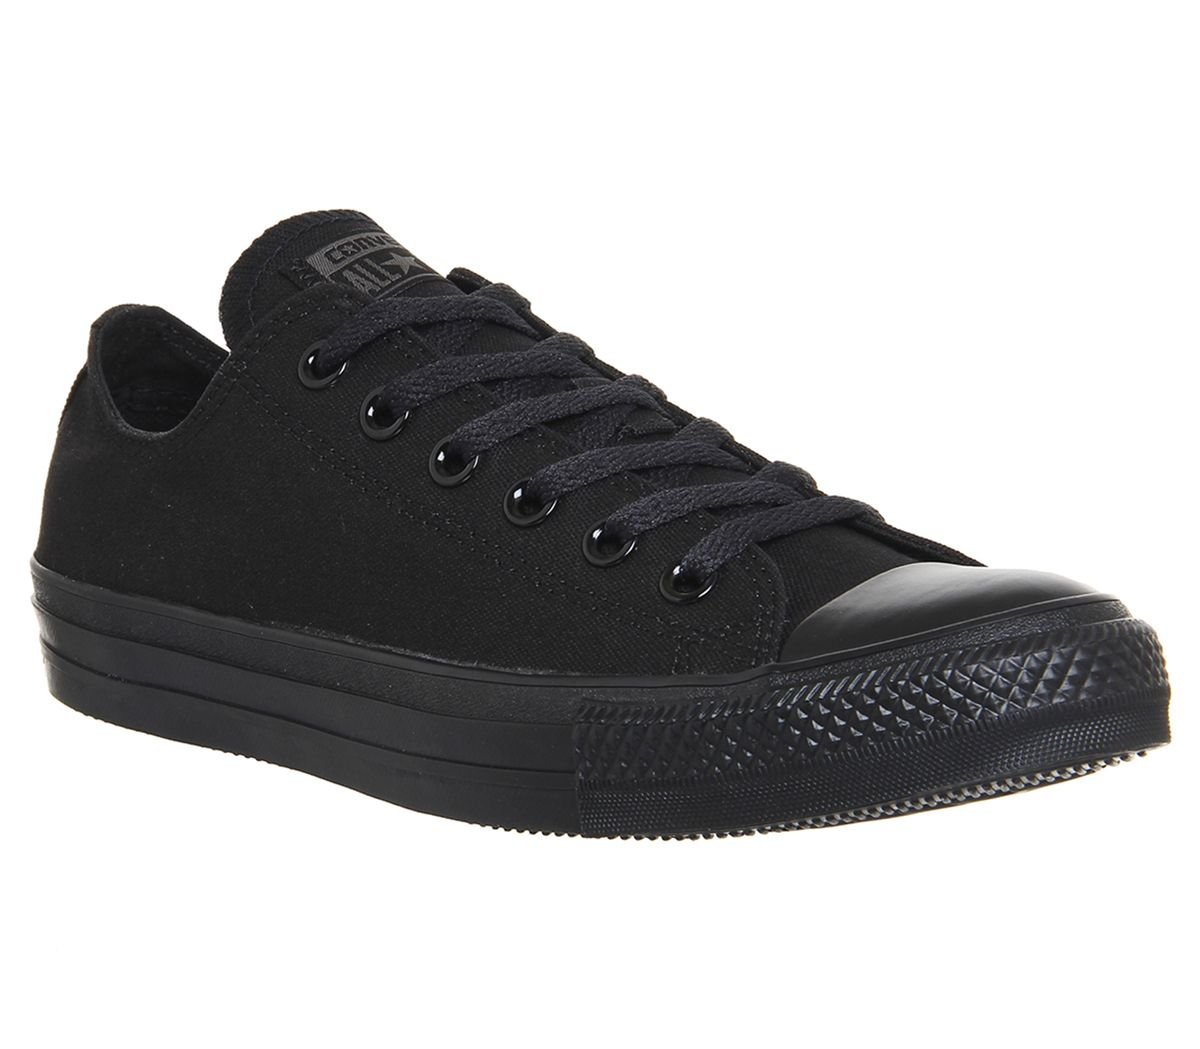 b54834cce92e Converse All Star Low Black Mono Canvas - Unisex Sports